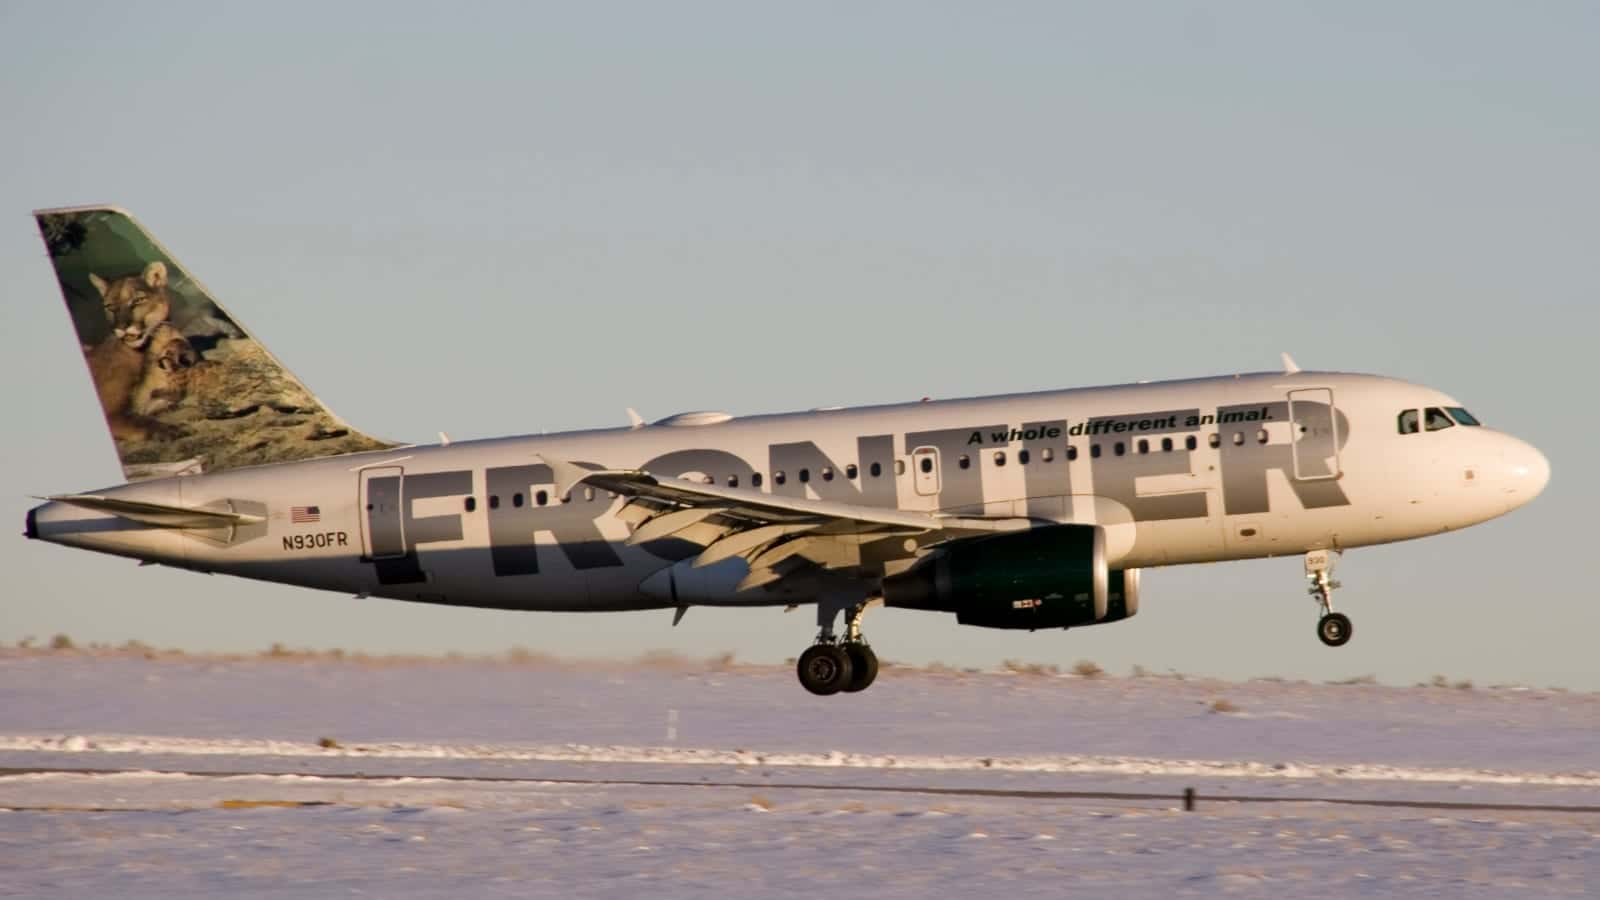 Denver International Airport Frontier Airlines Arrival Landing